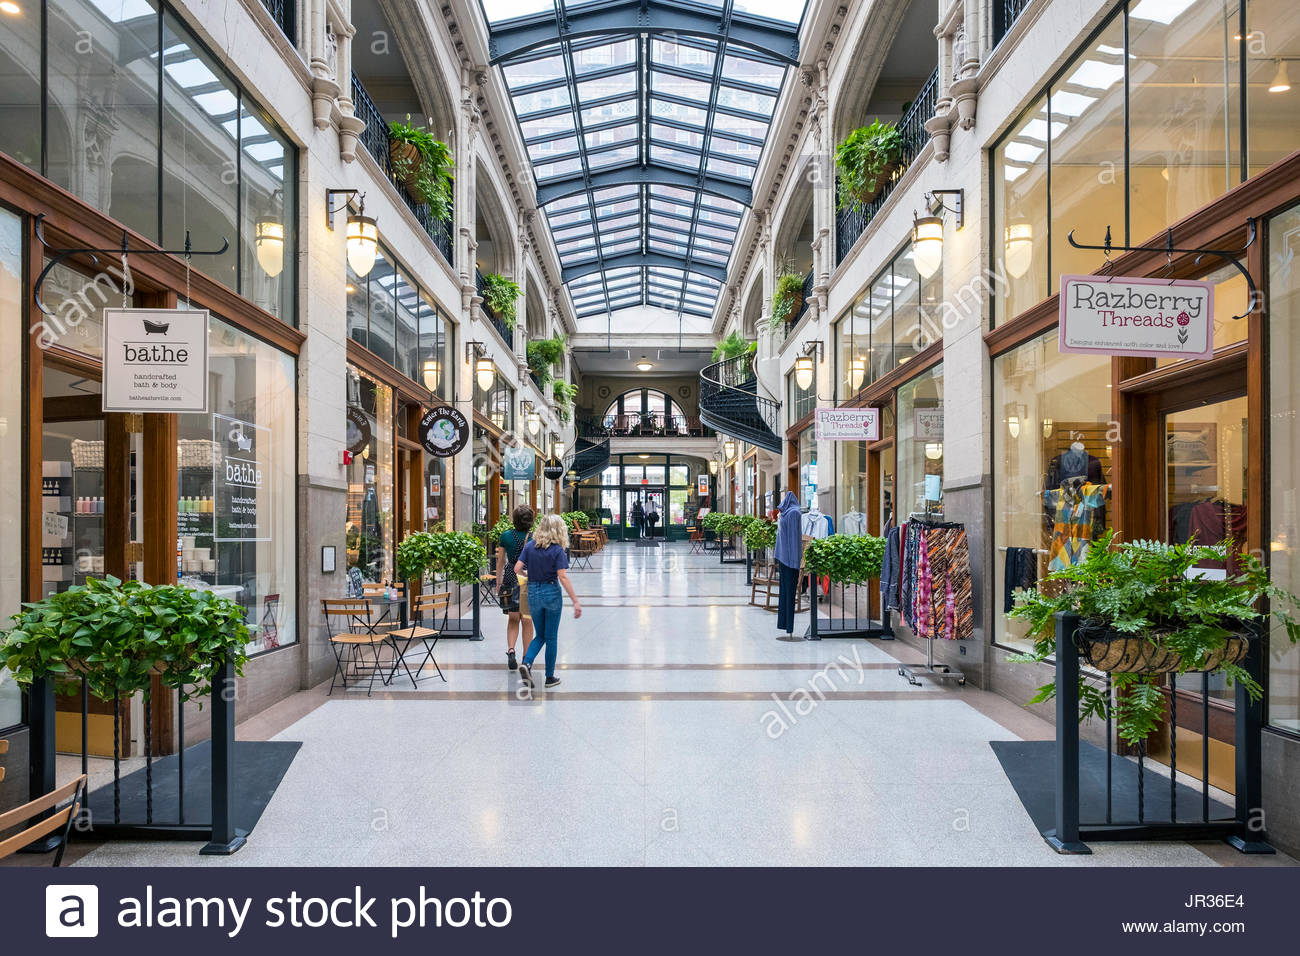 United States, North Carolina, Buncombe County, Asheville. Grove Arcade historic shopping mall in downtown Asheville. - Stock Image